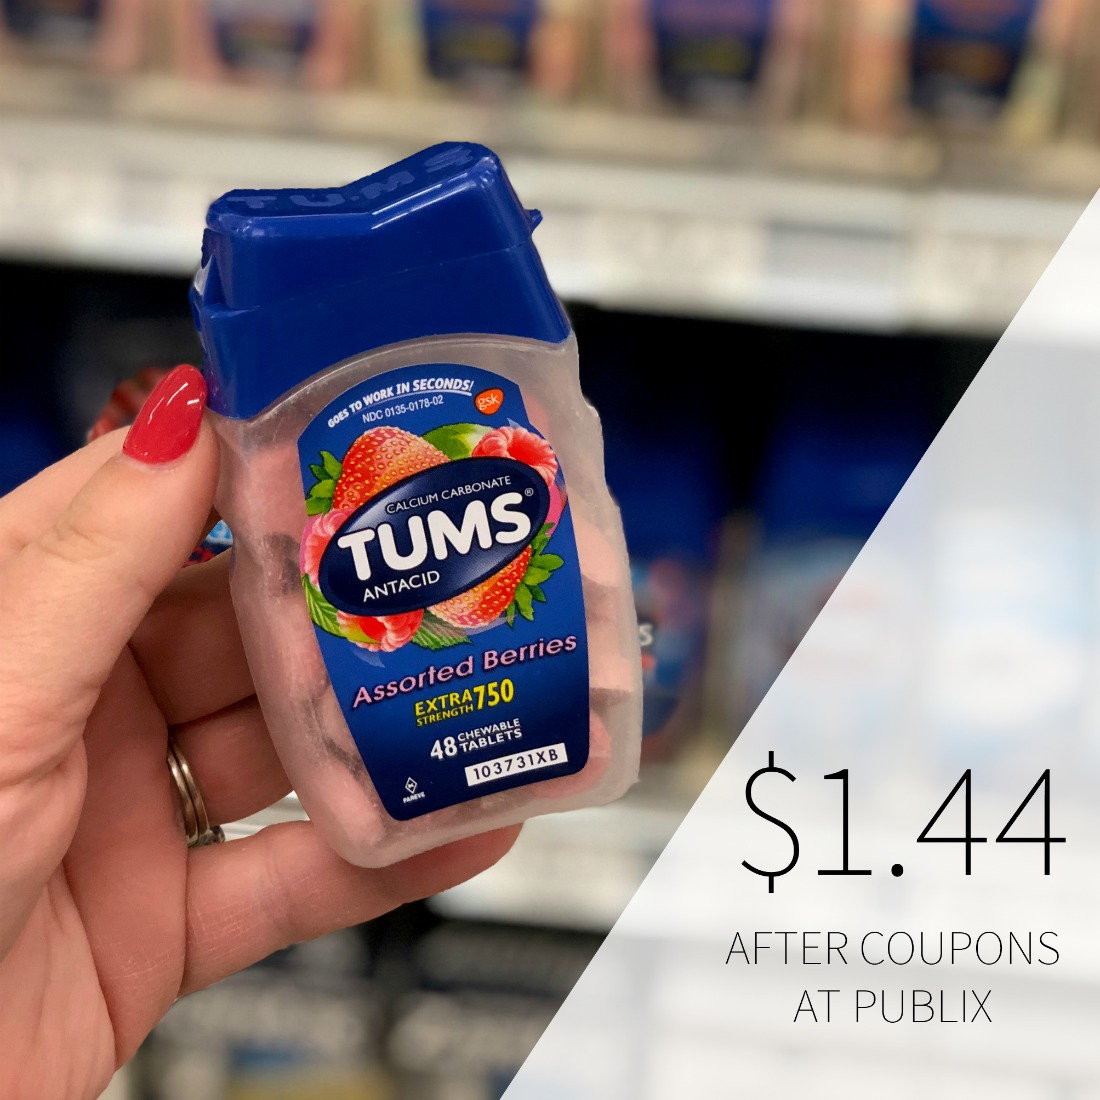 graphic relating to Tums Coupon Printable identify Perfect Bundle Upon Tums Antacid At Publix - Bottles As Minimal As $1.44